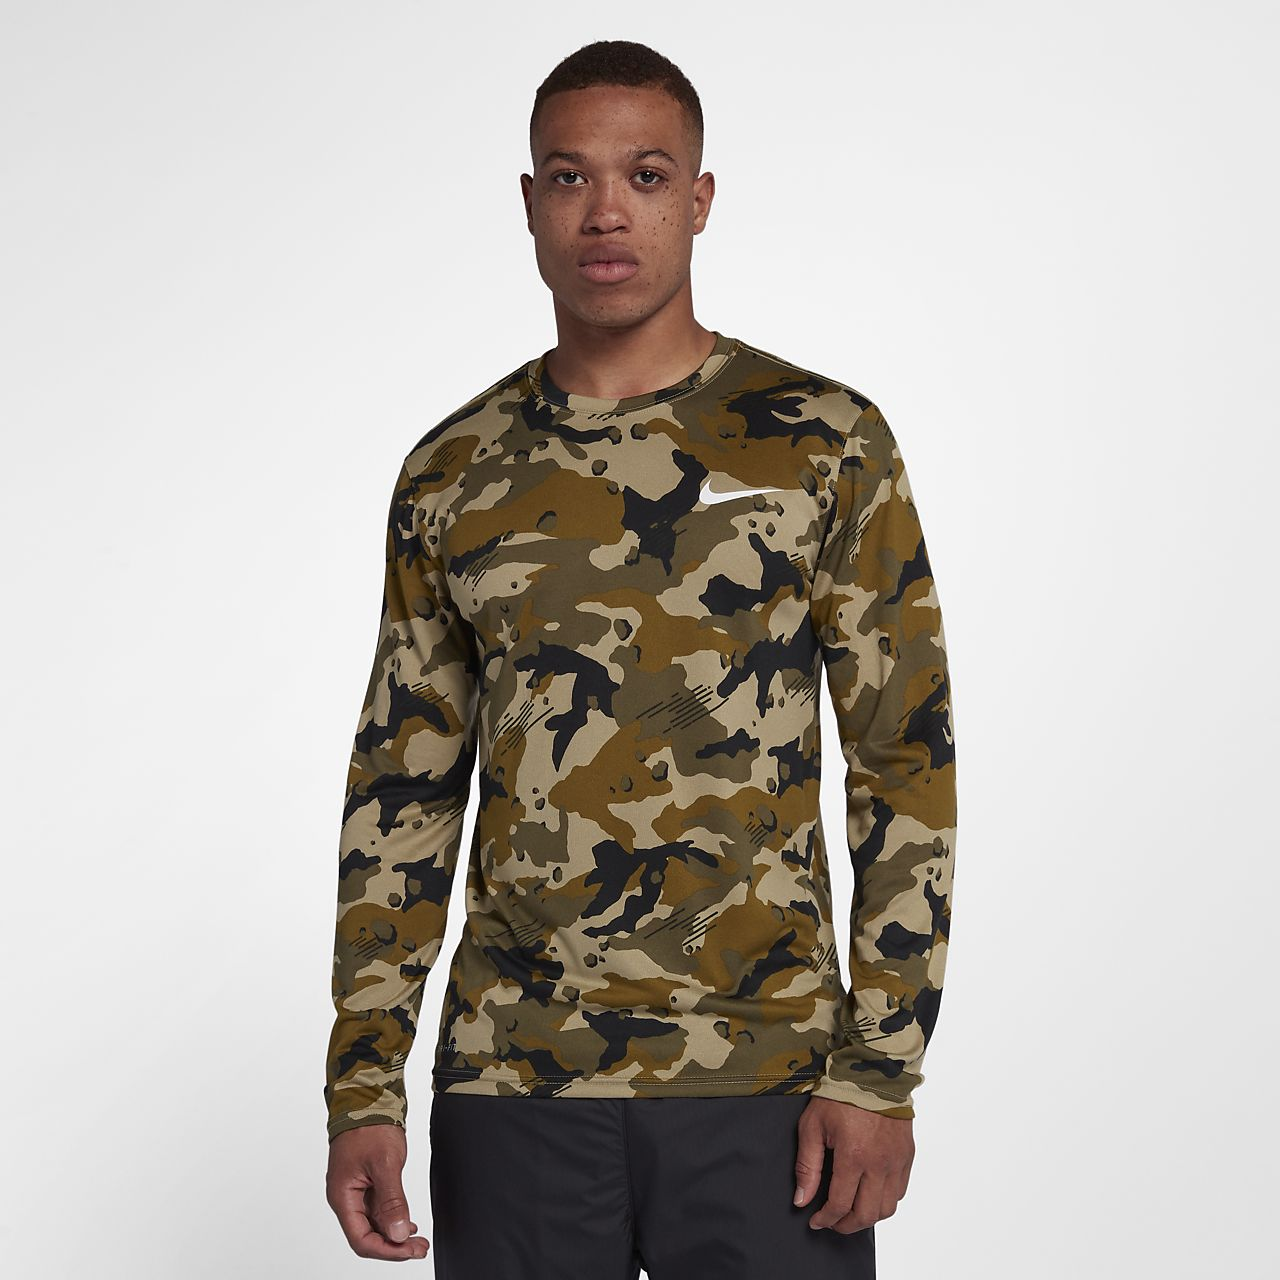 Nike Dri-FIT Legend Trainingstop met lange mouwen en camouflageprint voor heren